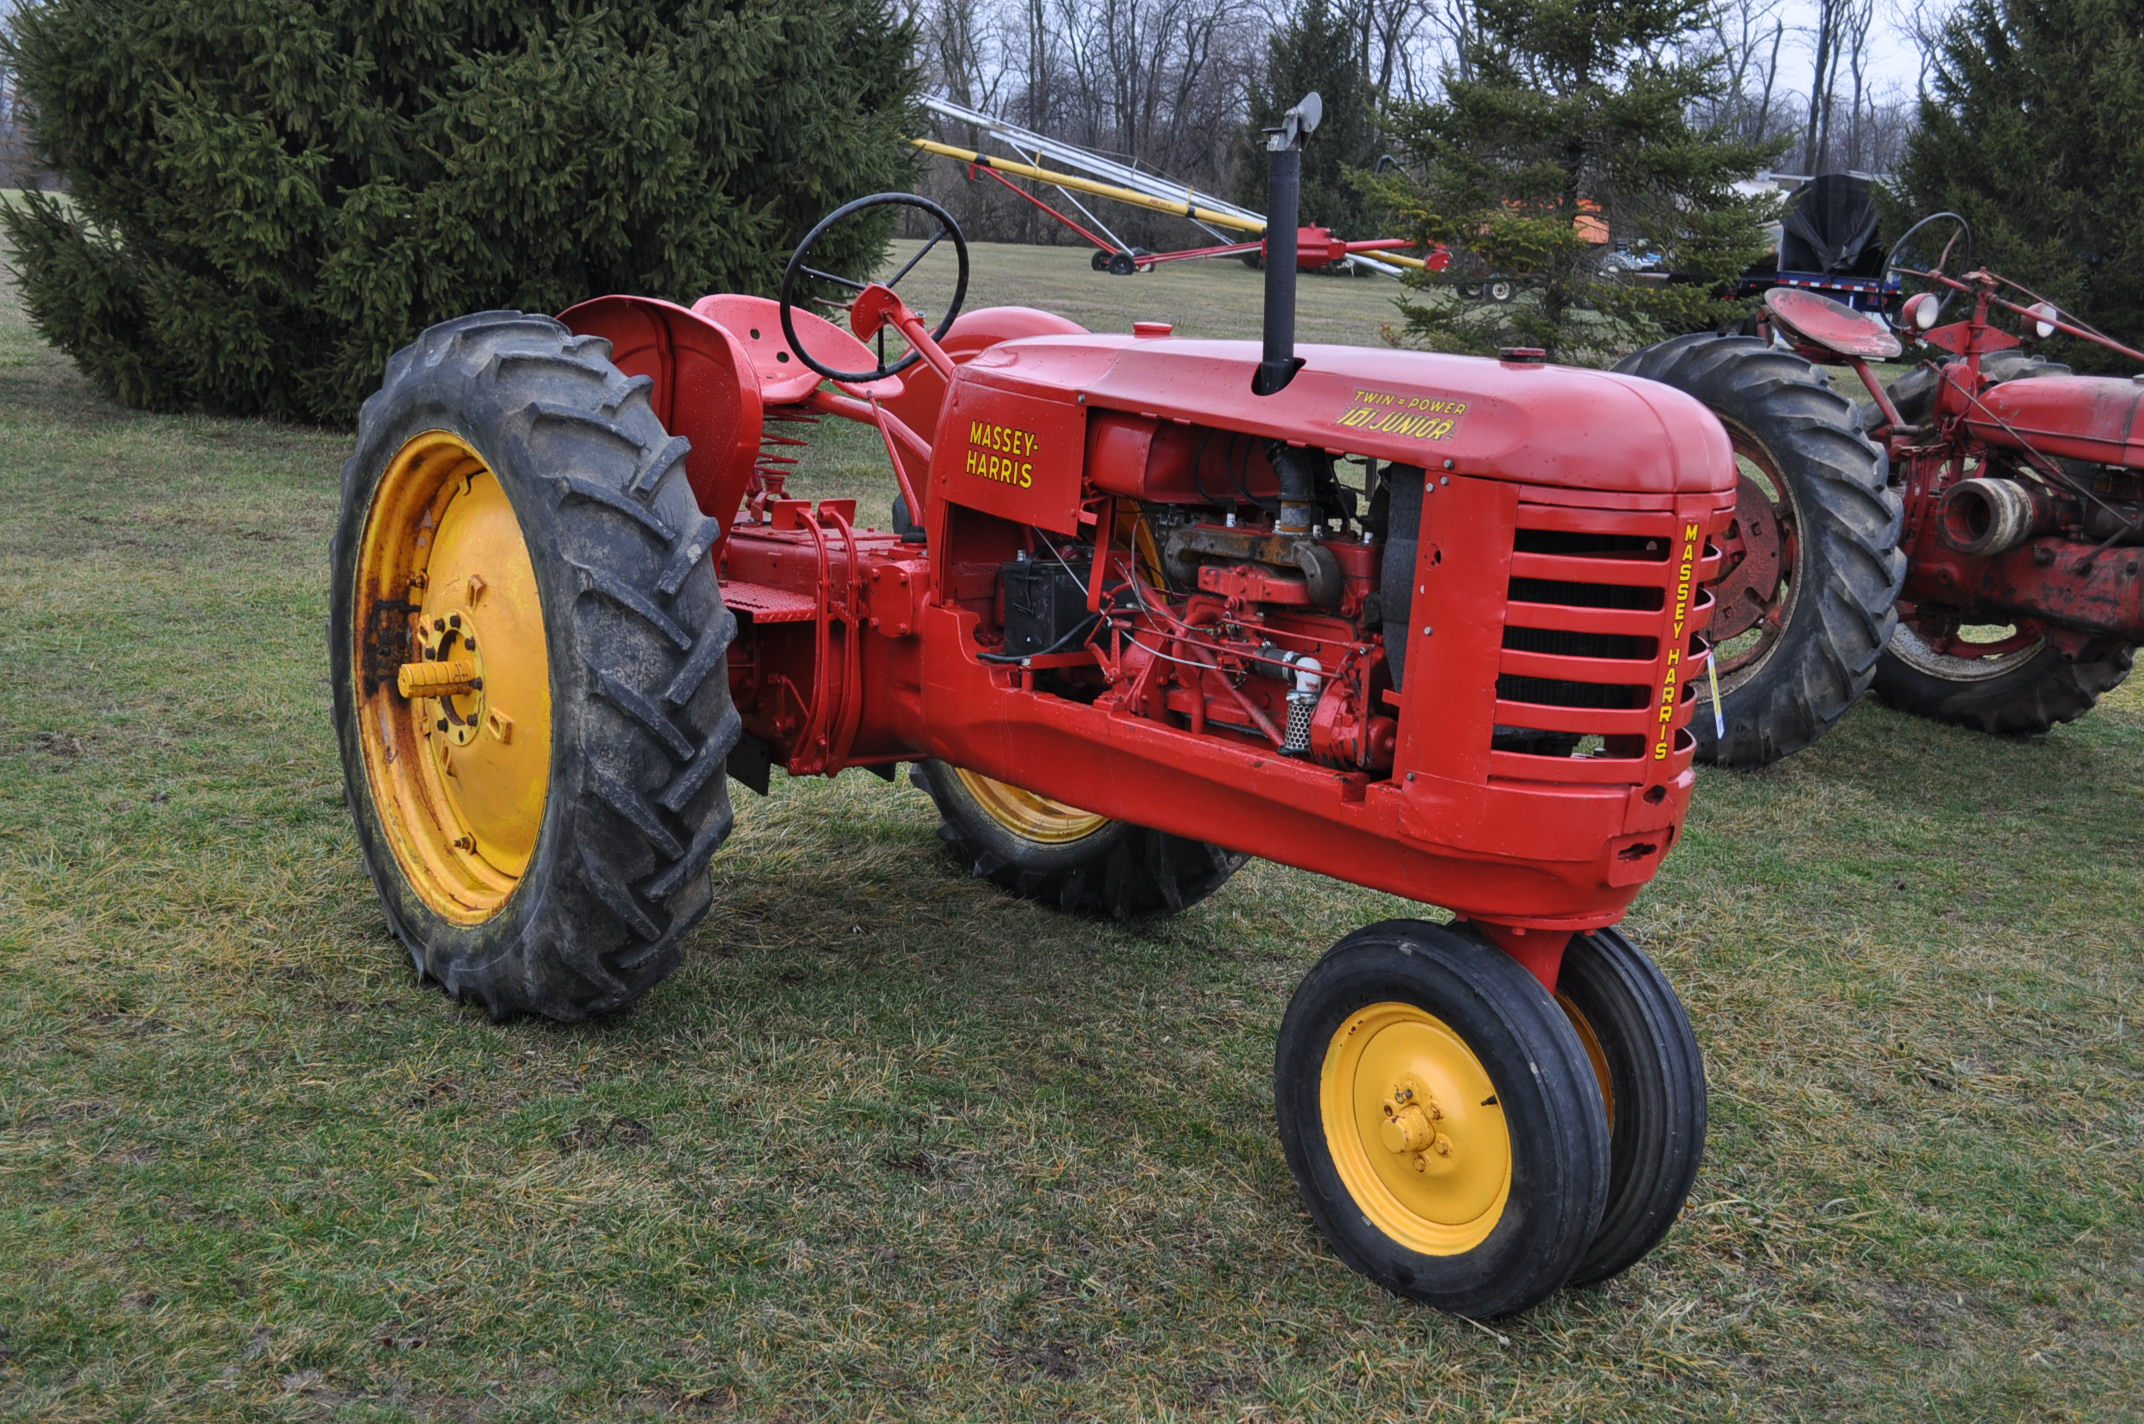 Massey Harris 101 Junior tractor, 12-38 tires, narrow front, 540 pto, SN 501605 - Image 4 of 12